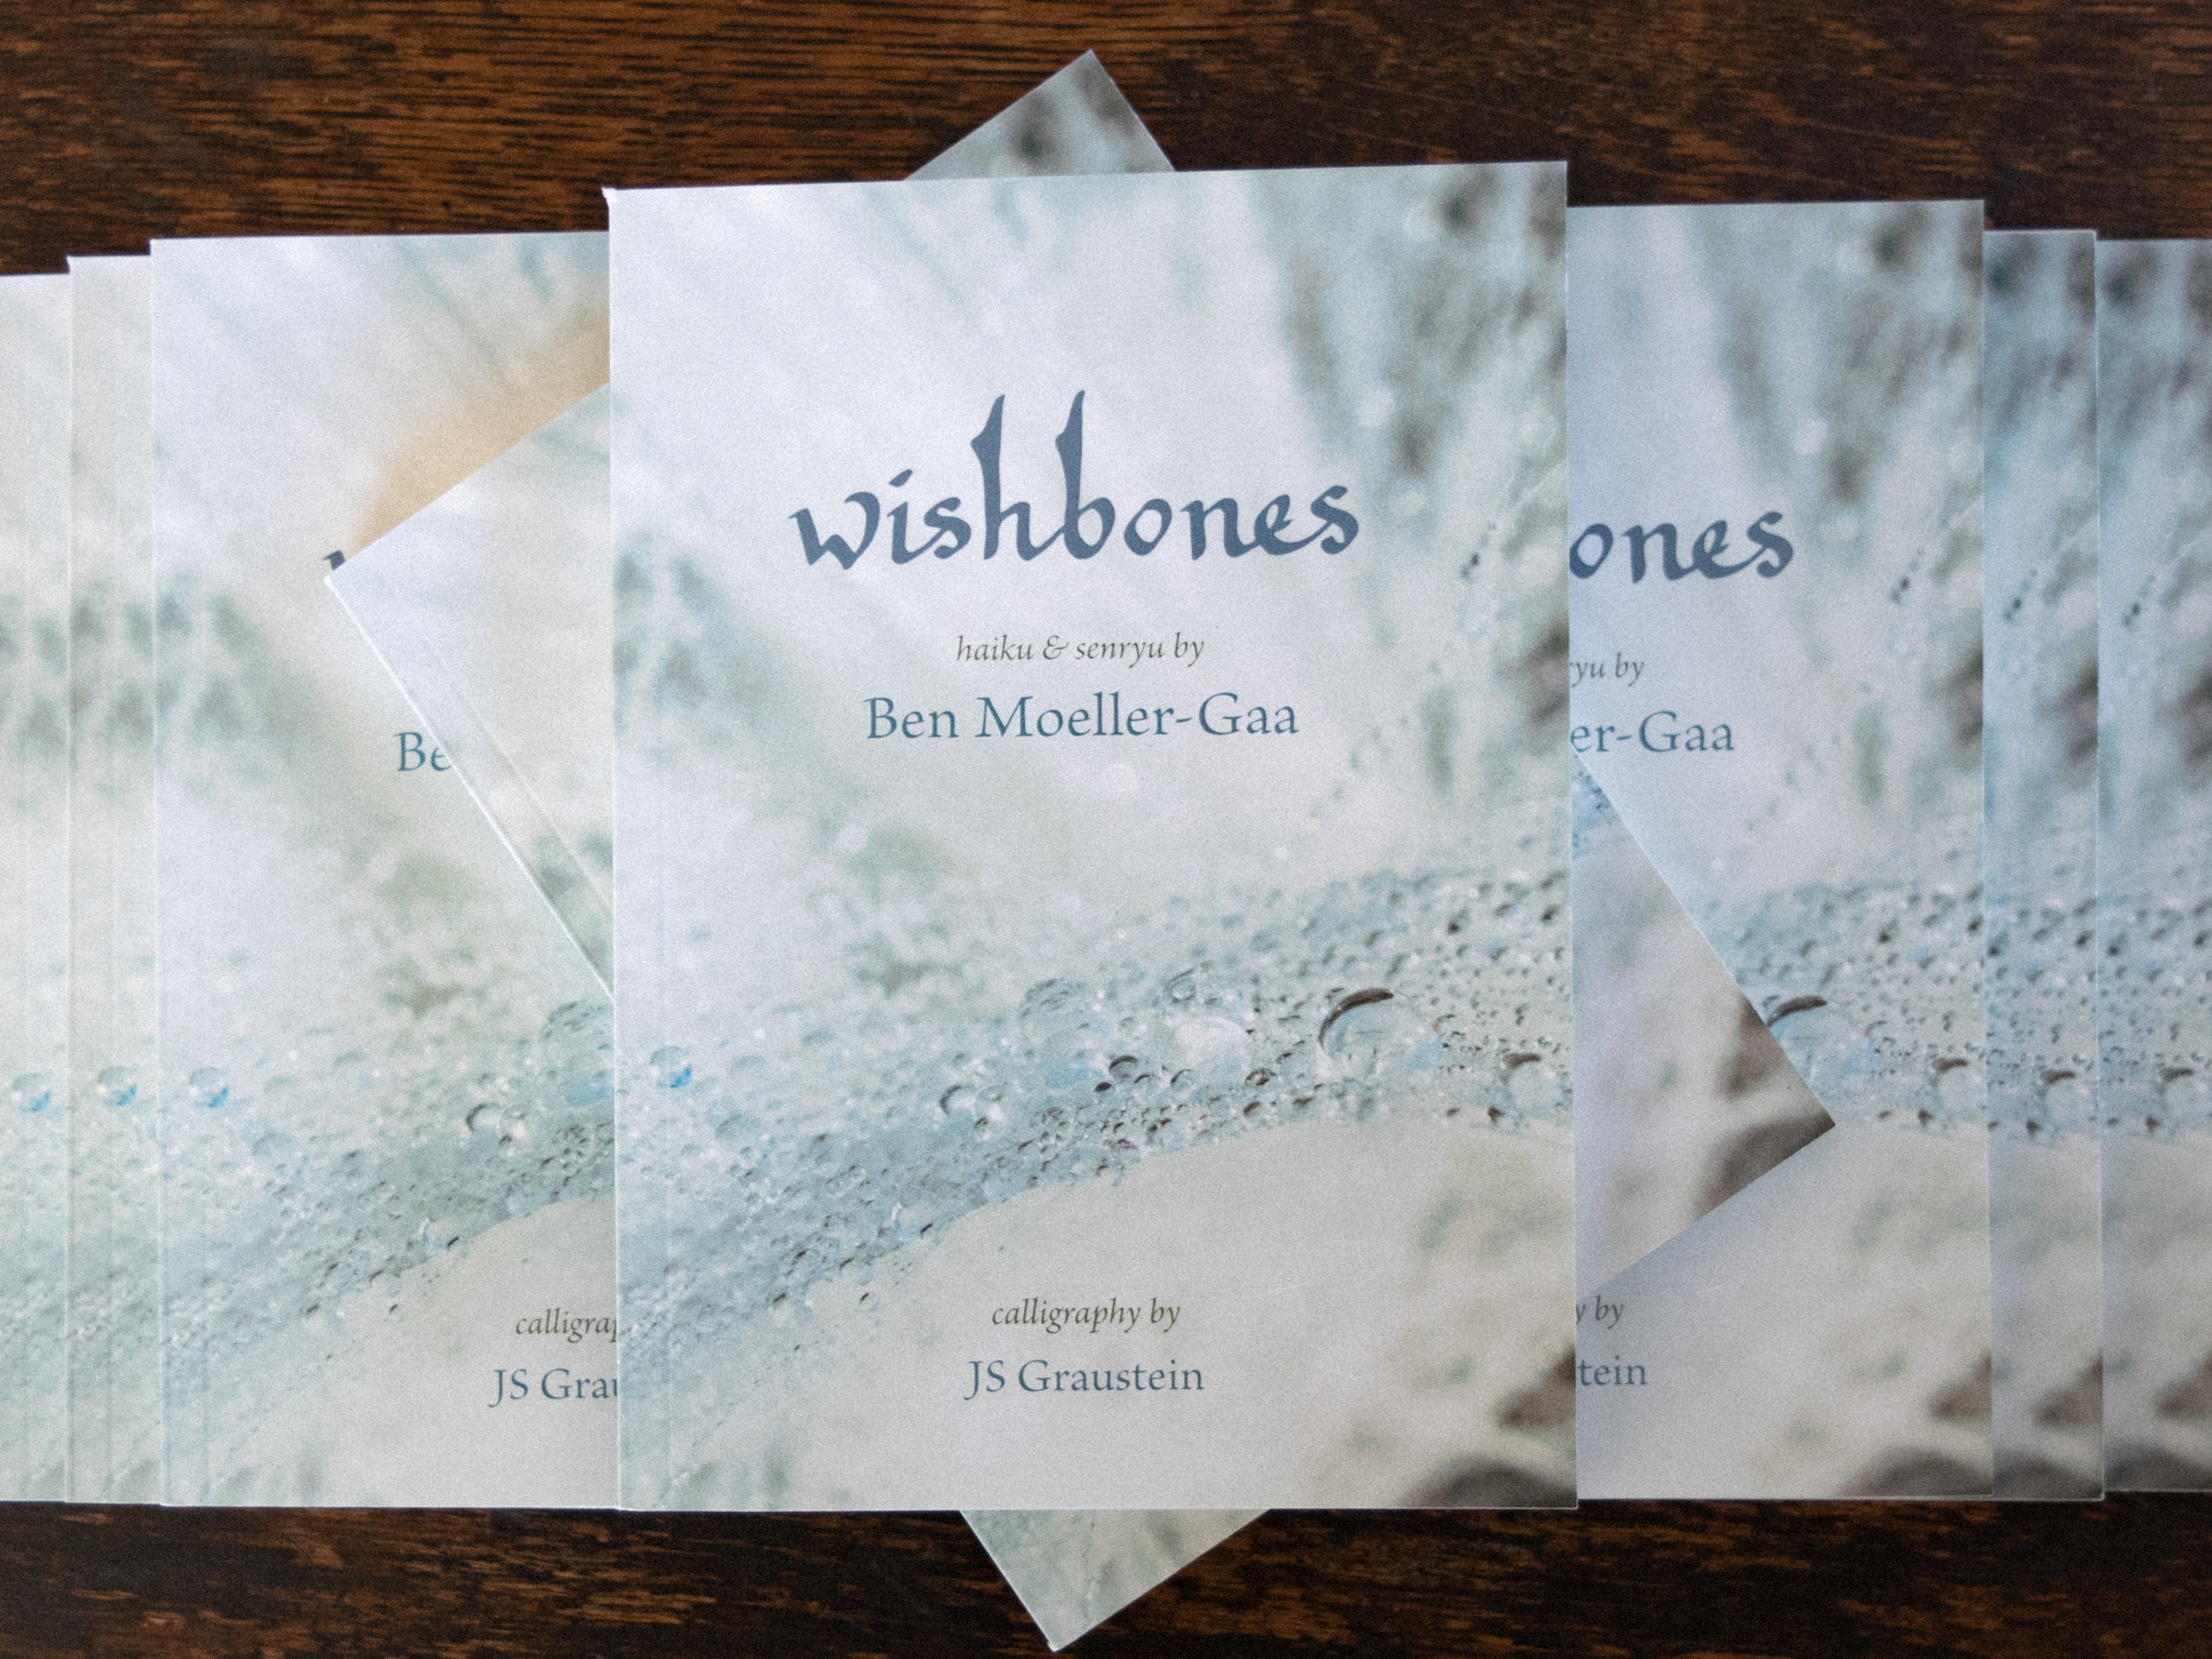 stack of Wishbones by Ben Moeller-Gaa